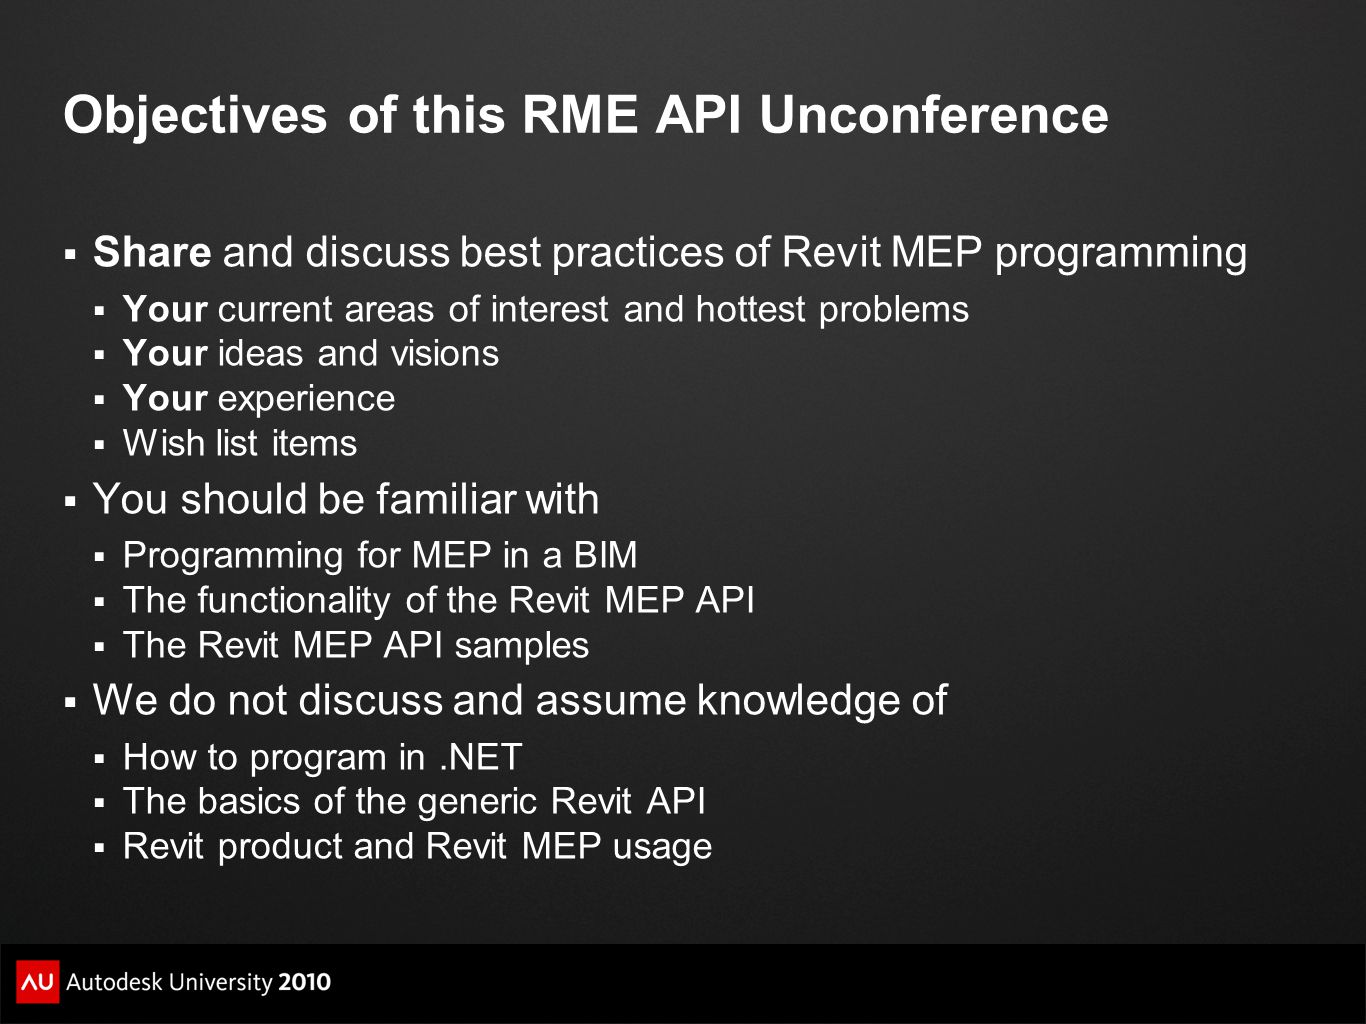 Objectives of this RME API Unconference